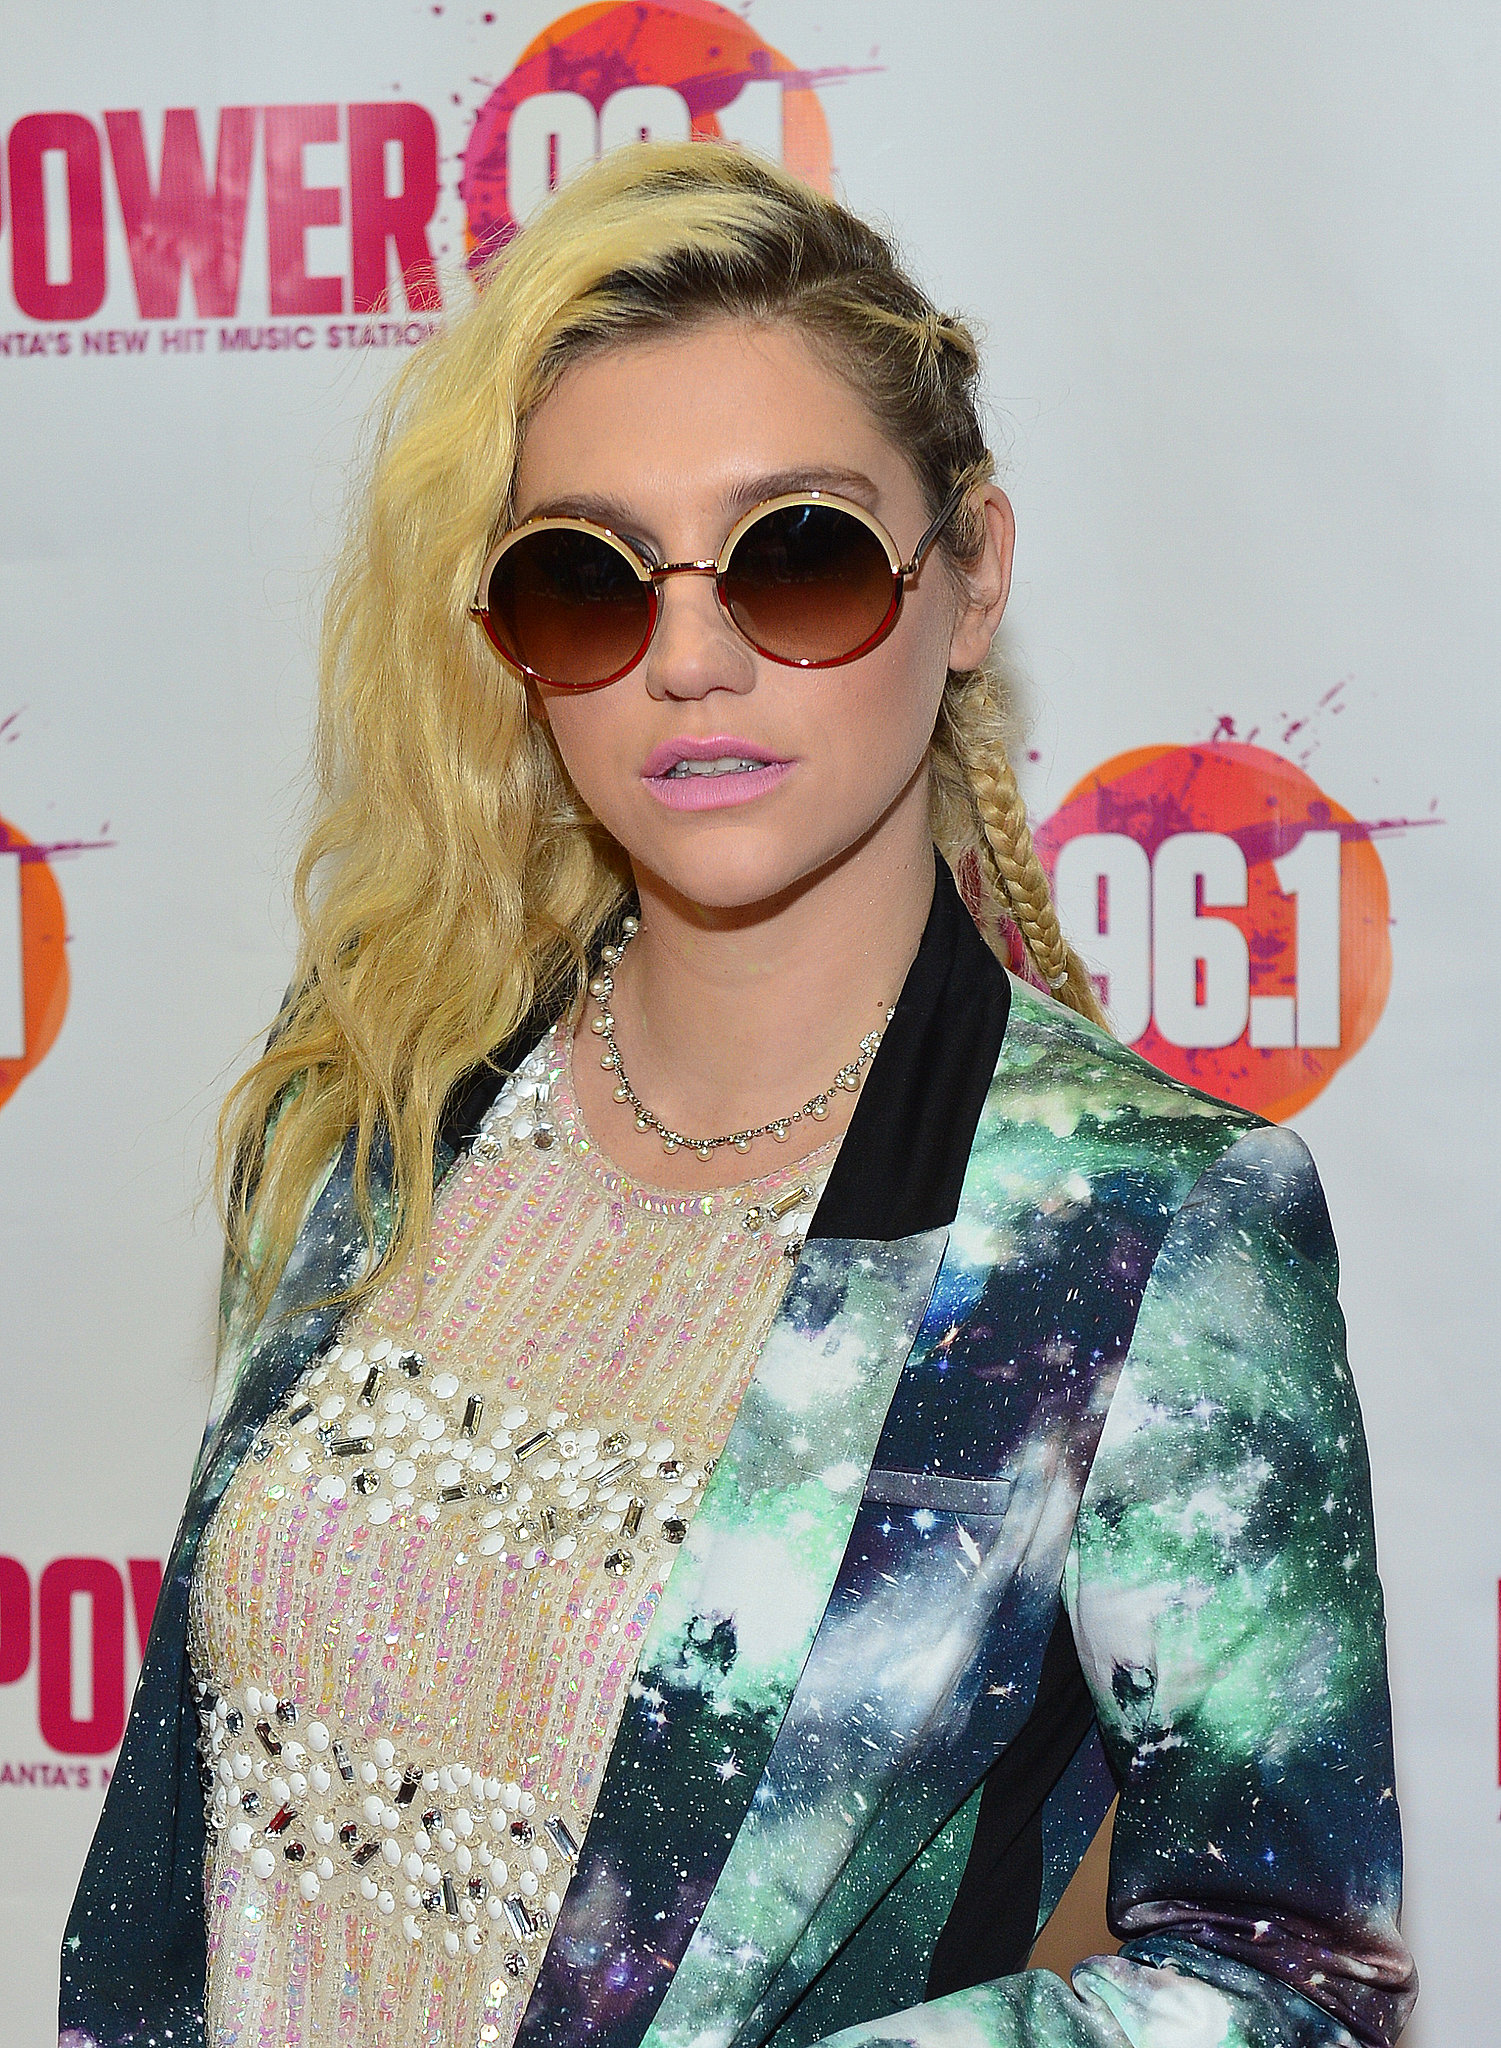 Known for her unique style, Ke$ha wore a braided undercut that showed off her dark roots and rock-star style.